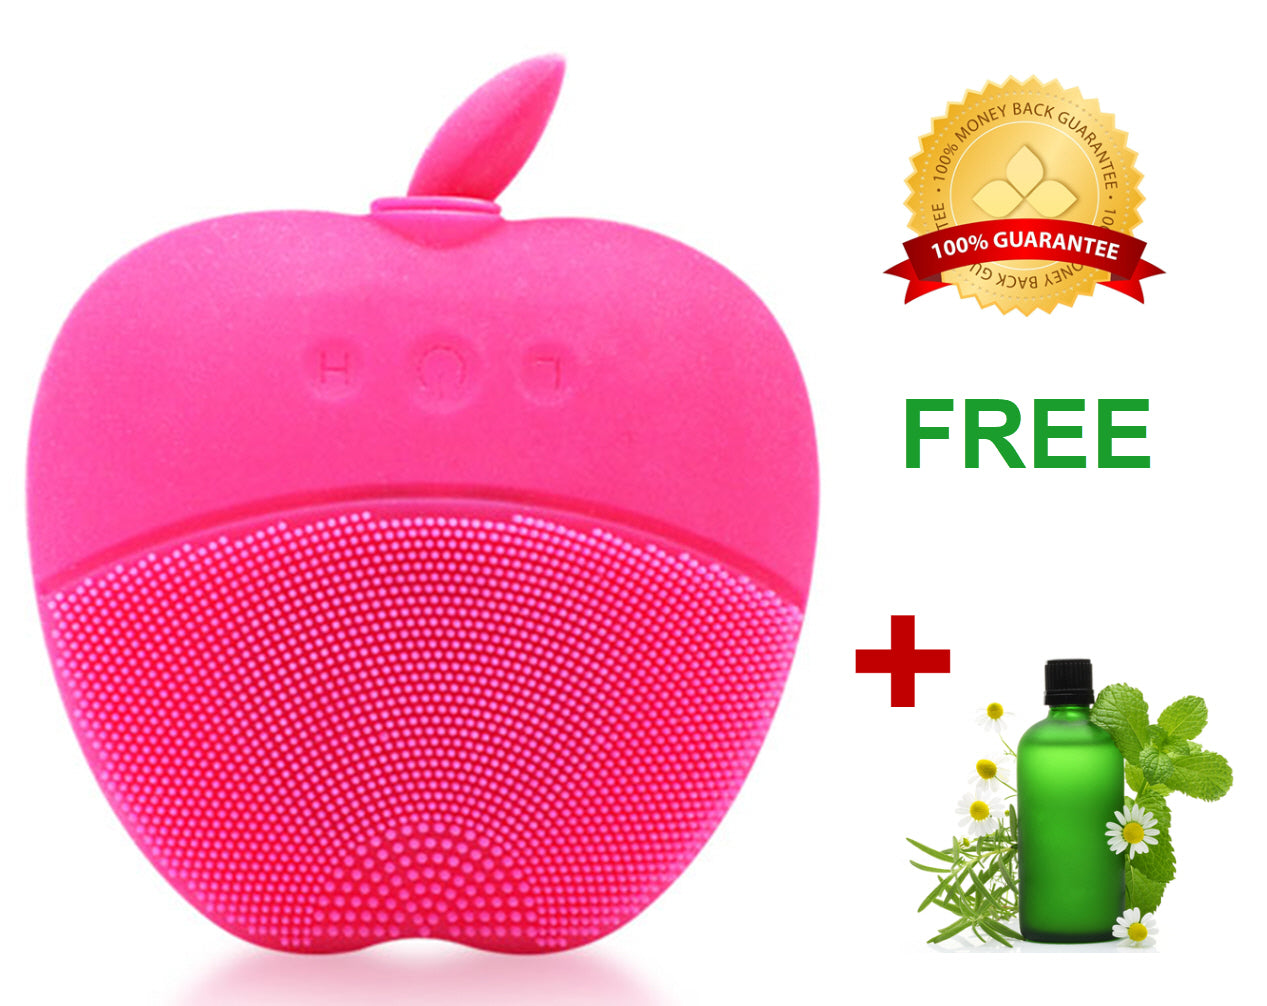 Sonic Peach Facial Cleansing Brush for Healthy Skin - Pink